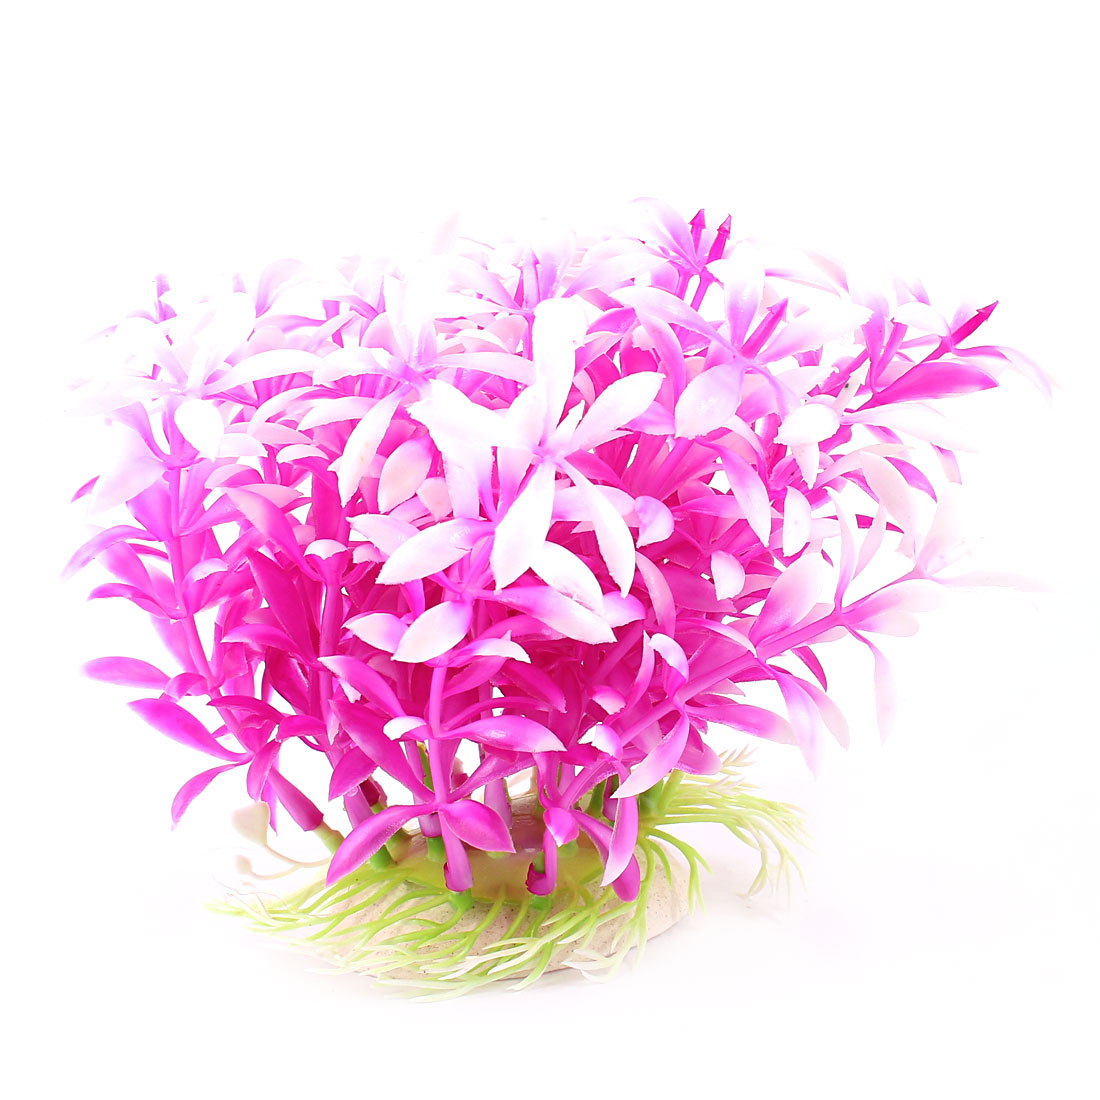 "Aquarium Fish Tank Ornament Landscaping Artificial Emulational Underwater Water Plant Grass Decor Fuchsia White 4.3"" Height"